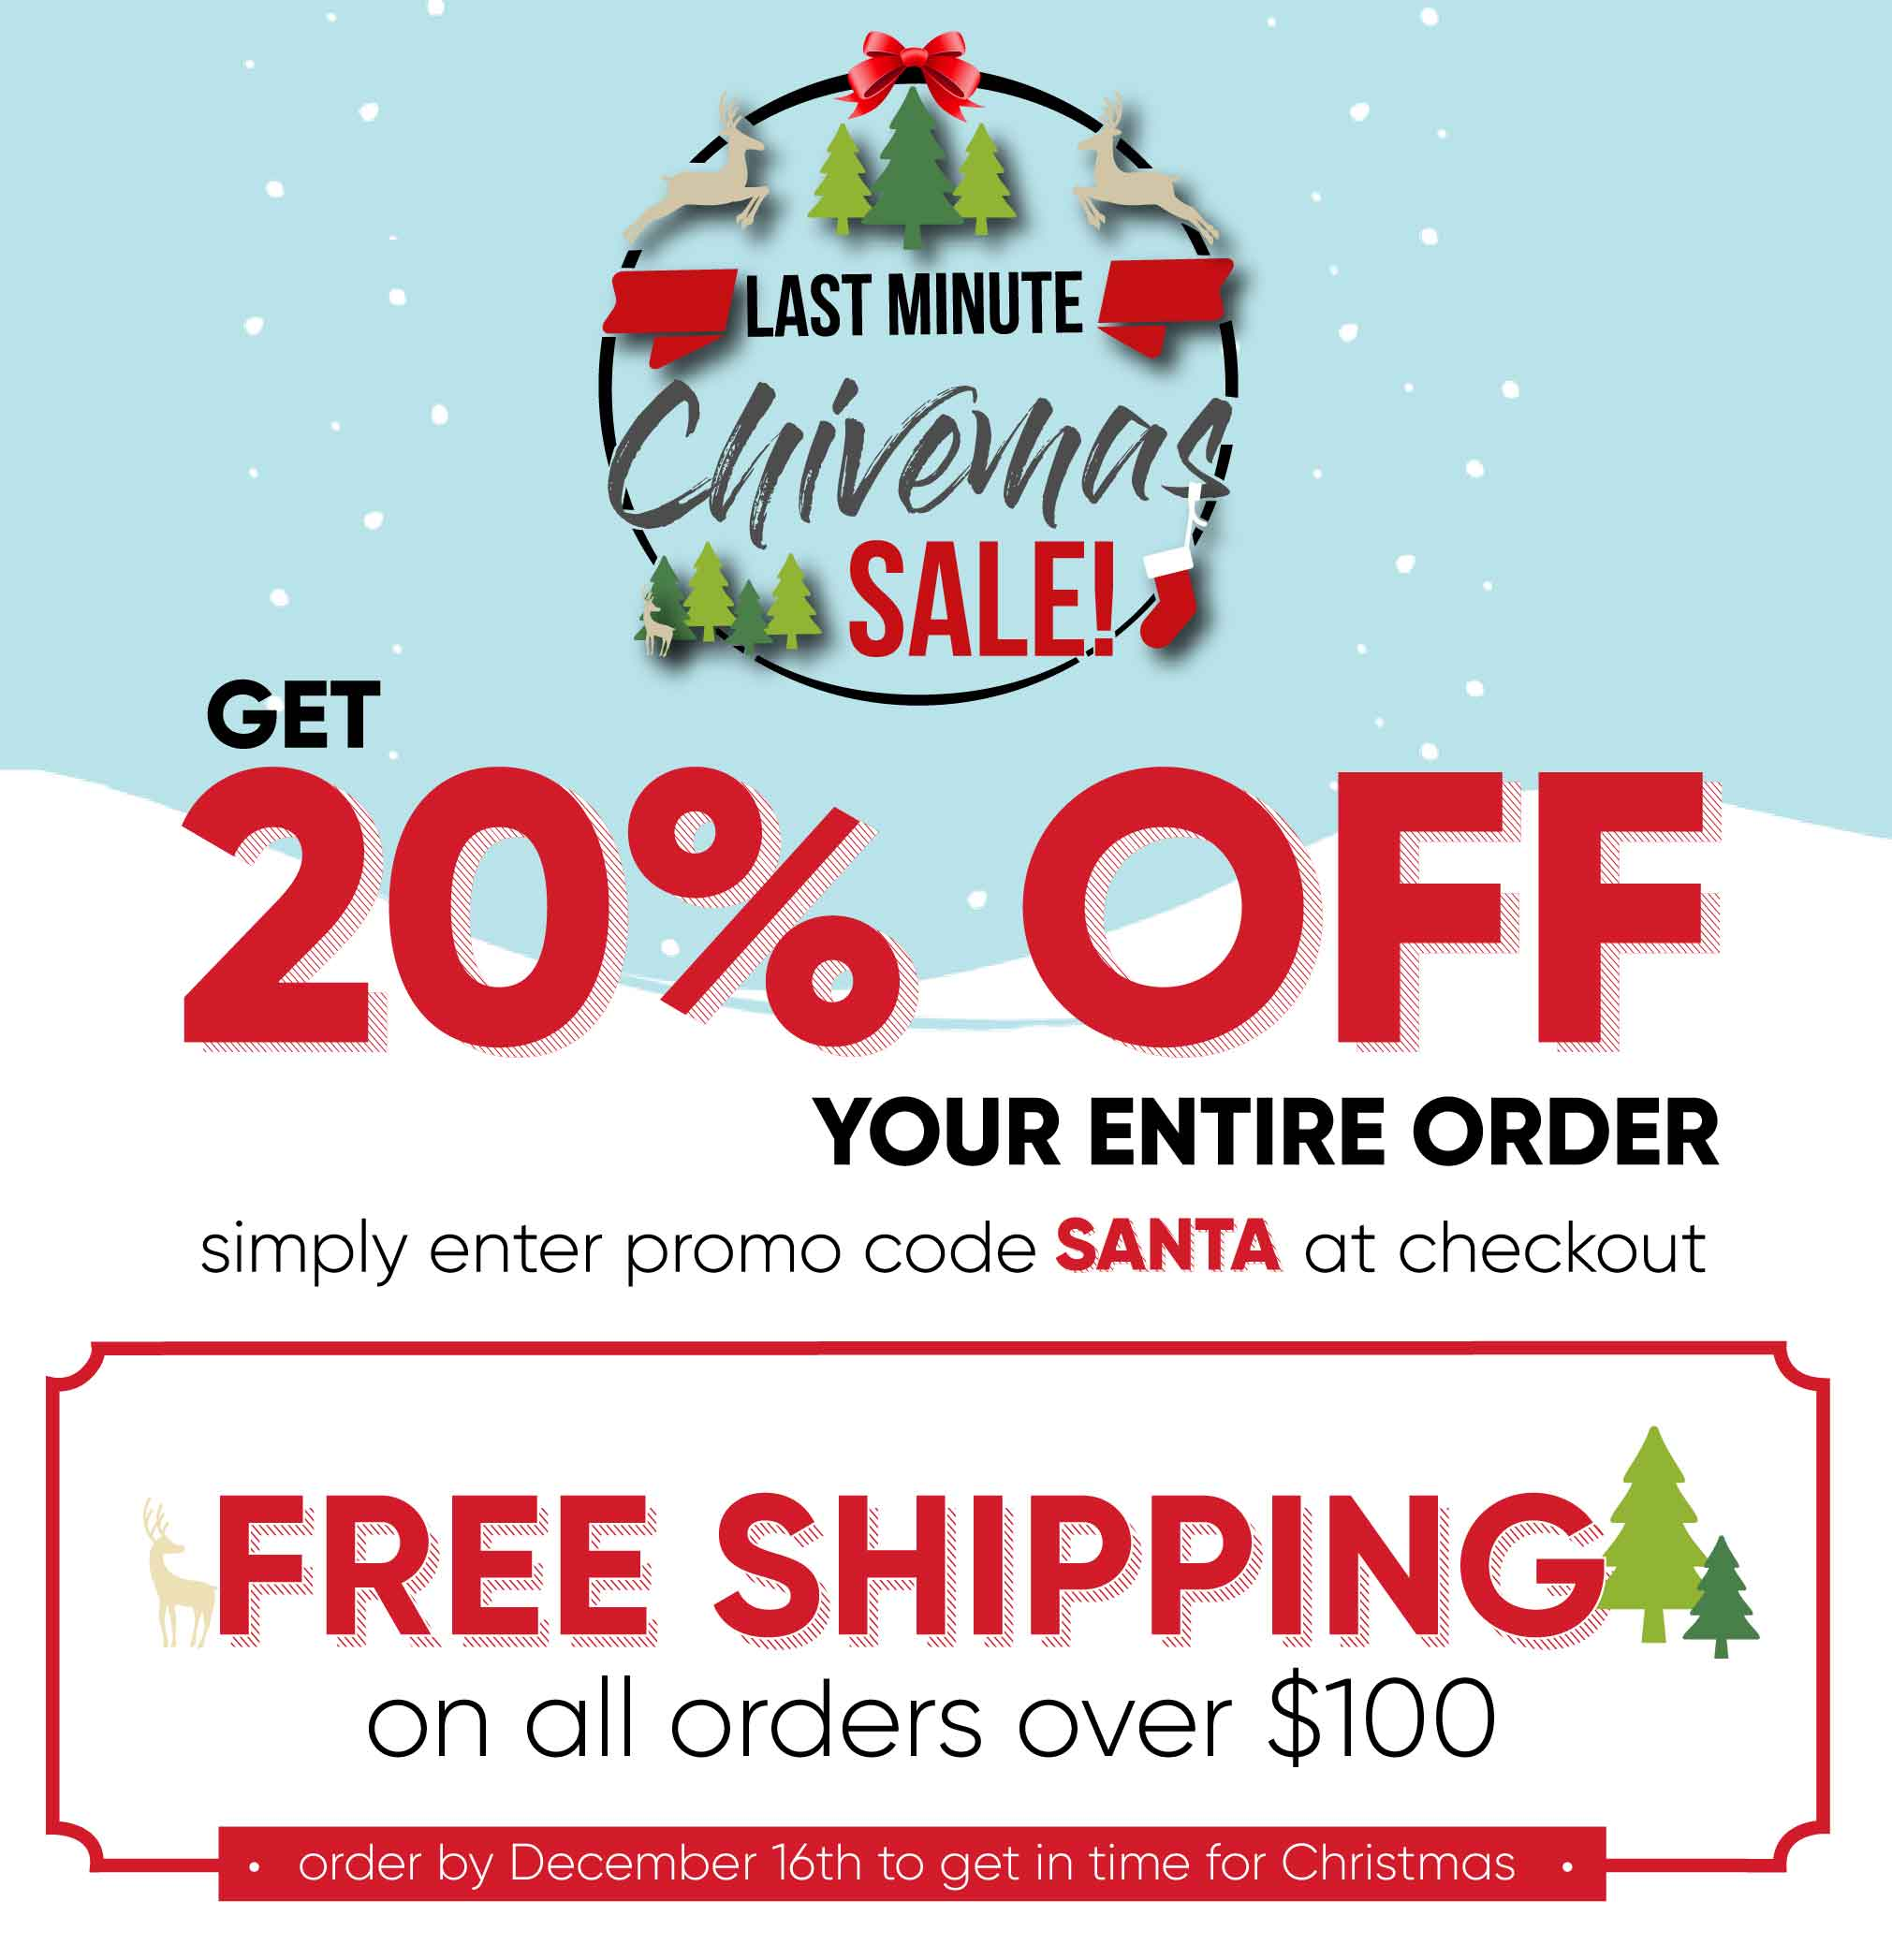 Chive Last Minute Christmas 20% off Event